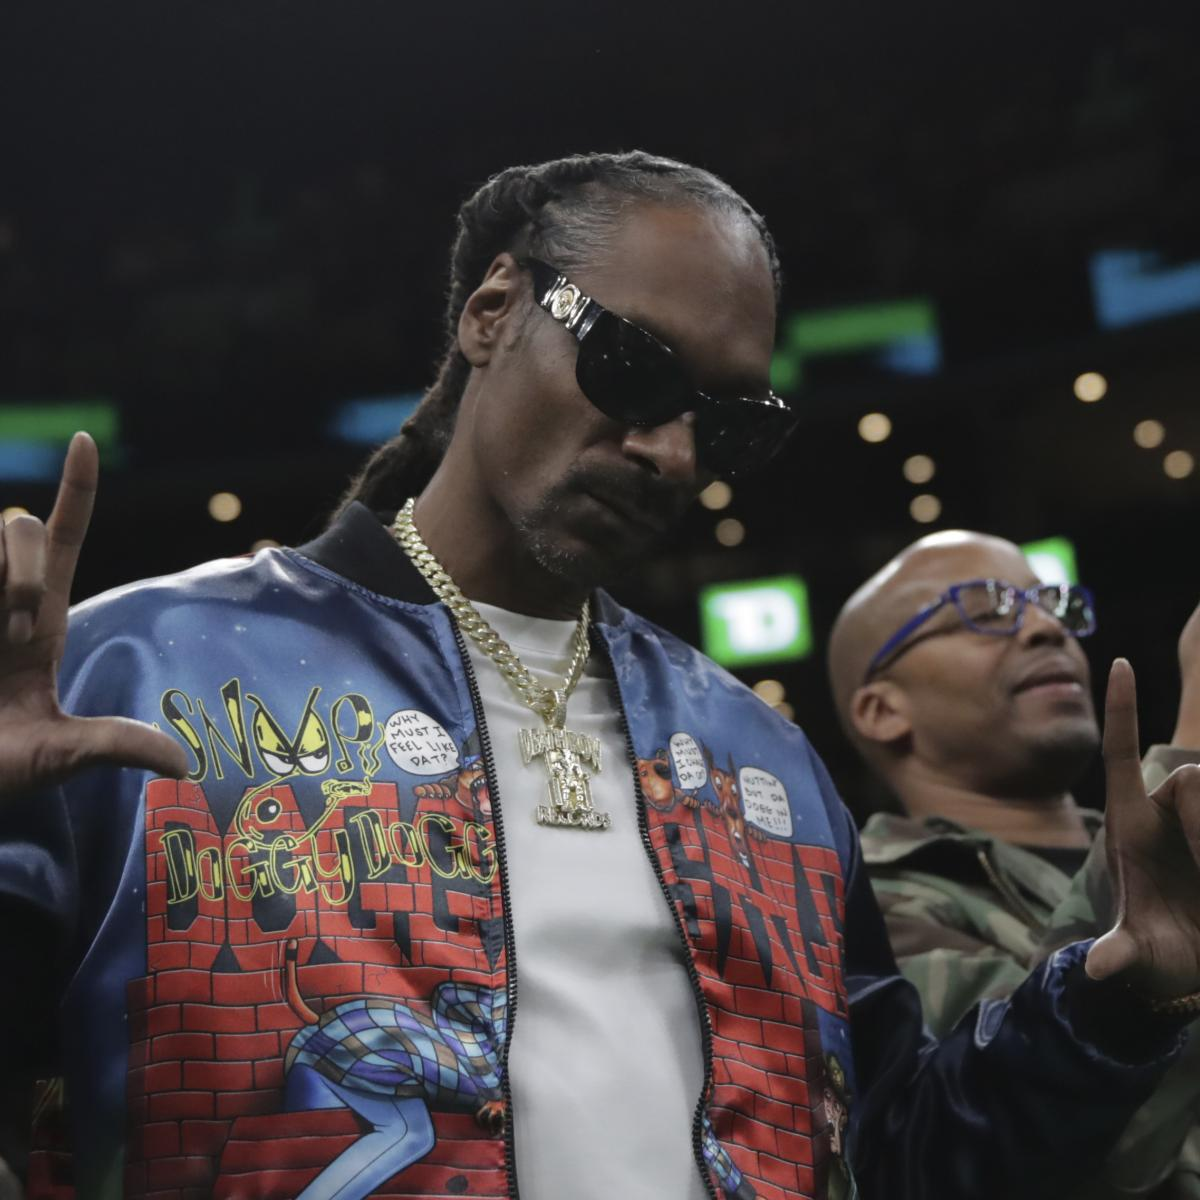 Snoop Dogg's Mike Tyson-Roy Jones Jr. Fight Commentary Sparks Twitter Reaction